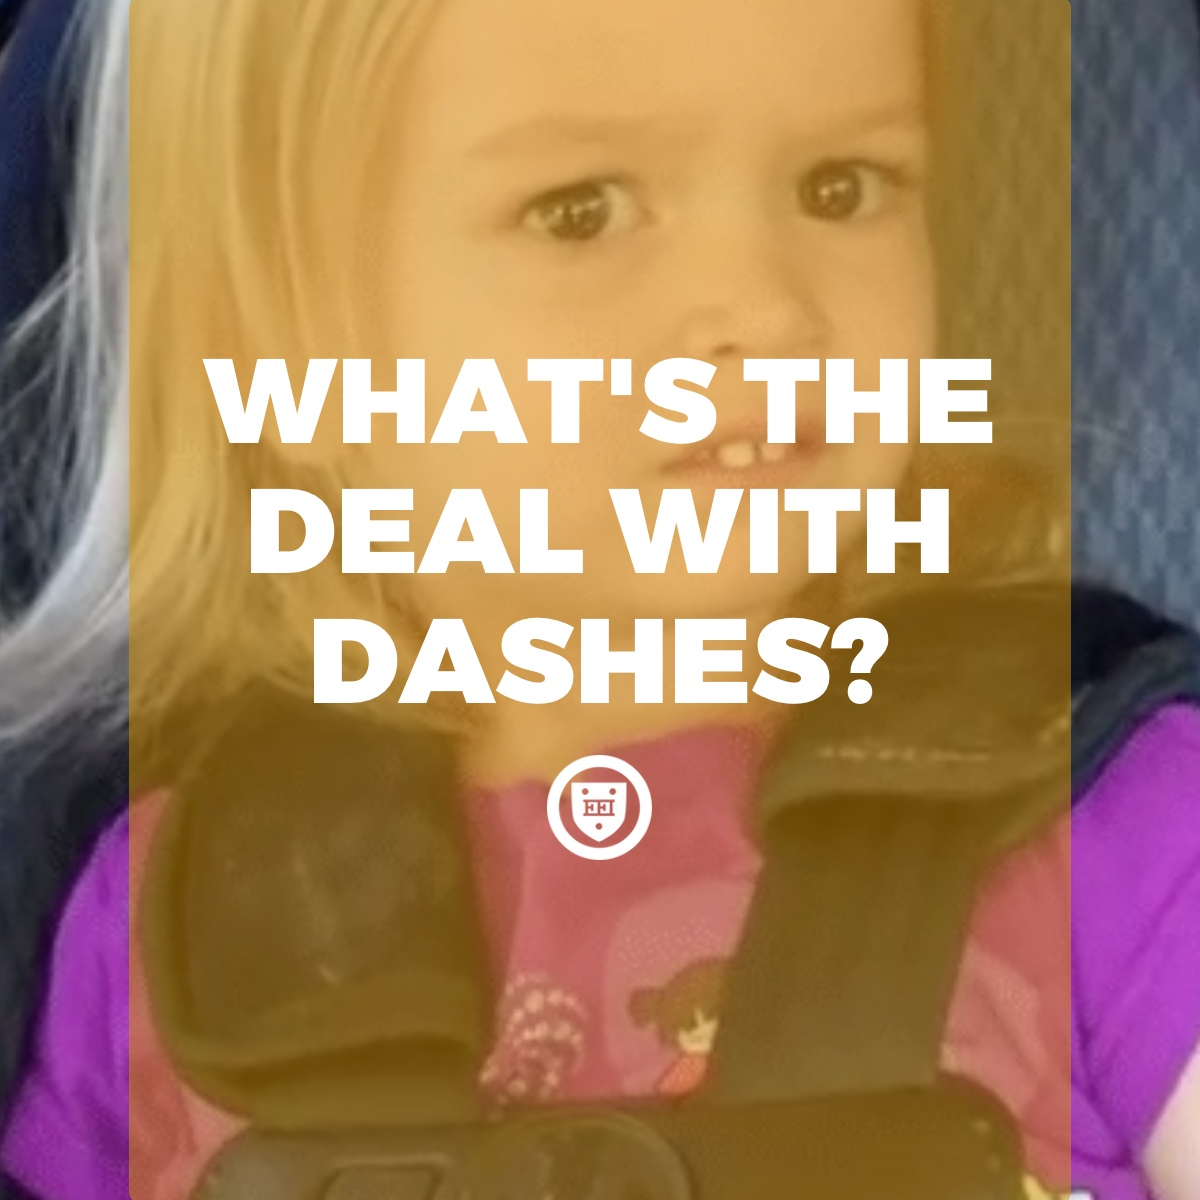 What's the Deal with Dashes?